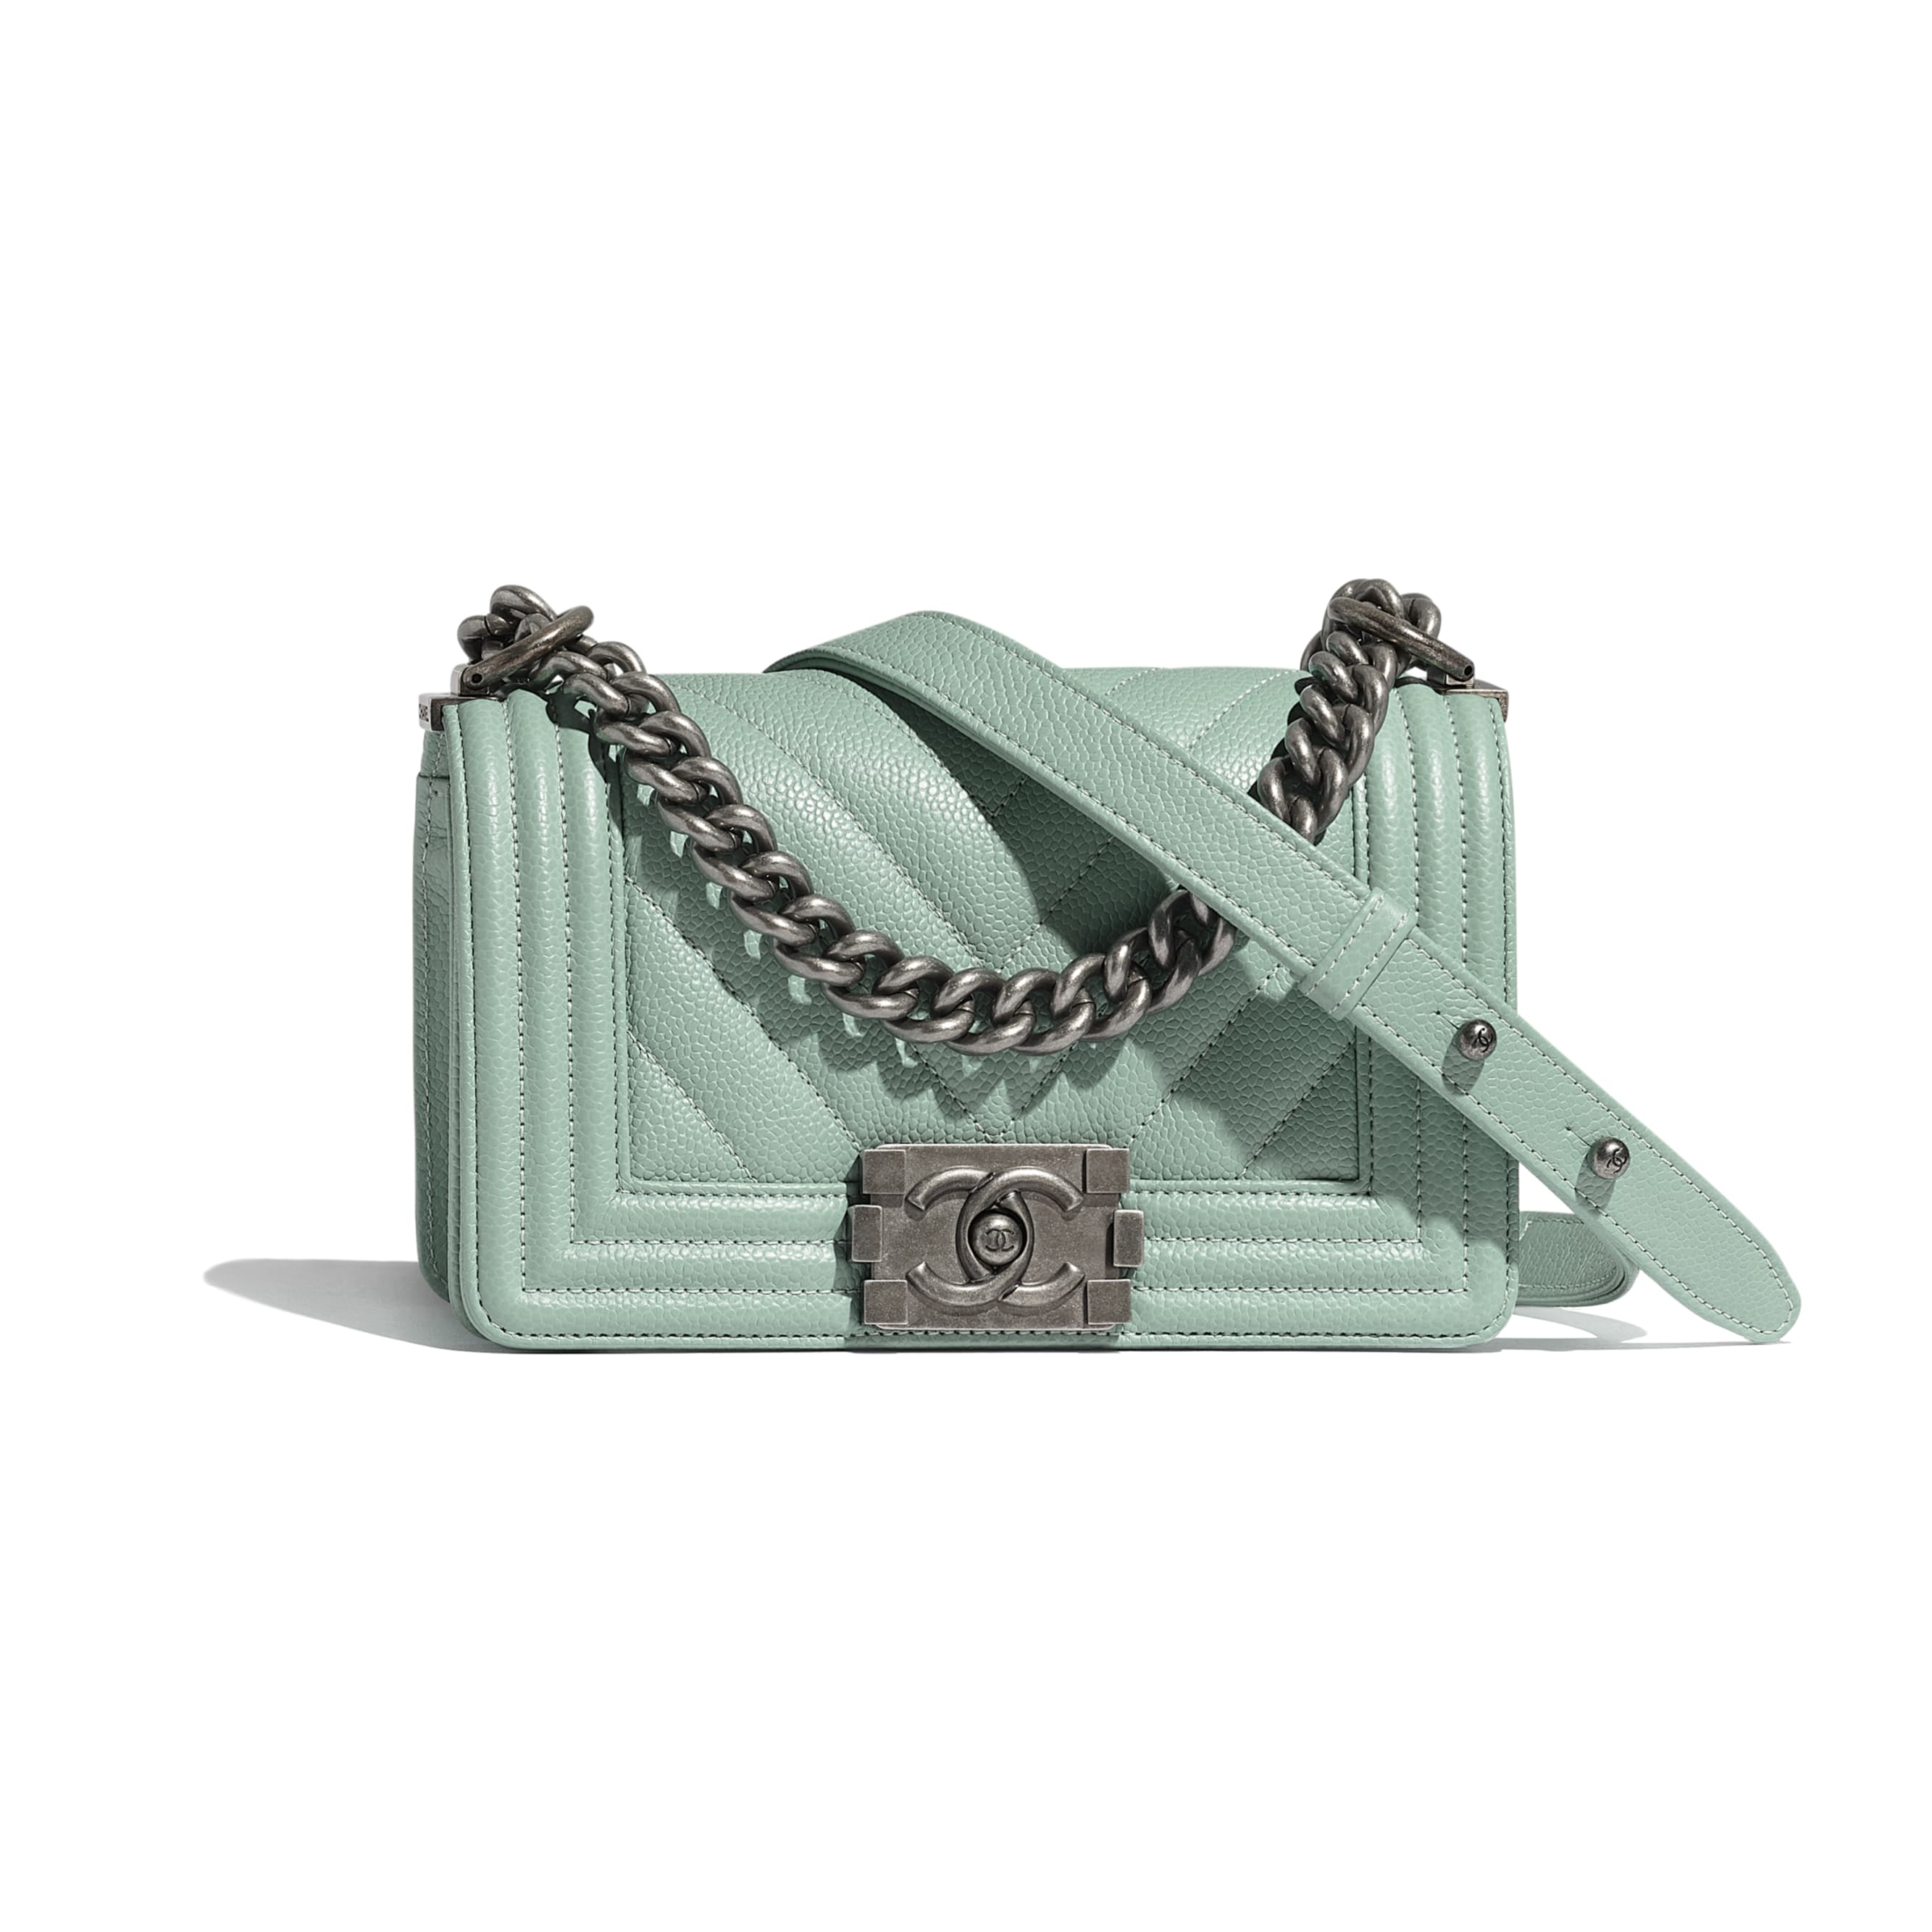 Small BOY CHANEL Handbag - Blue - Grained Calfskin & Ruthenium-Finish Metal - Default view - see standard sized version